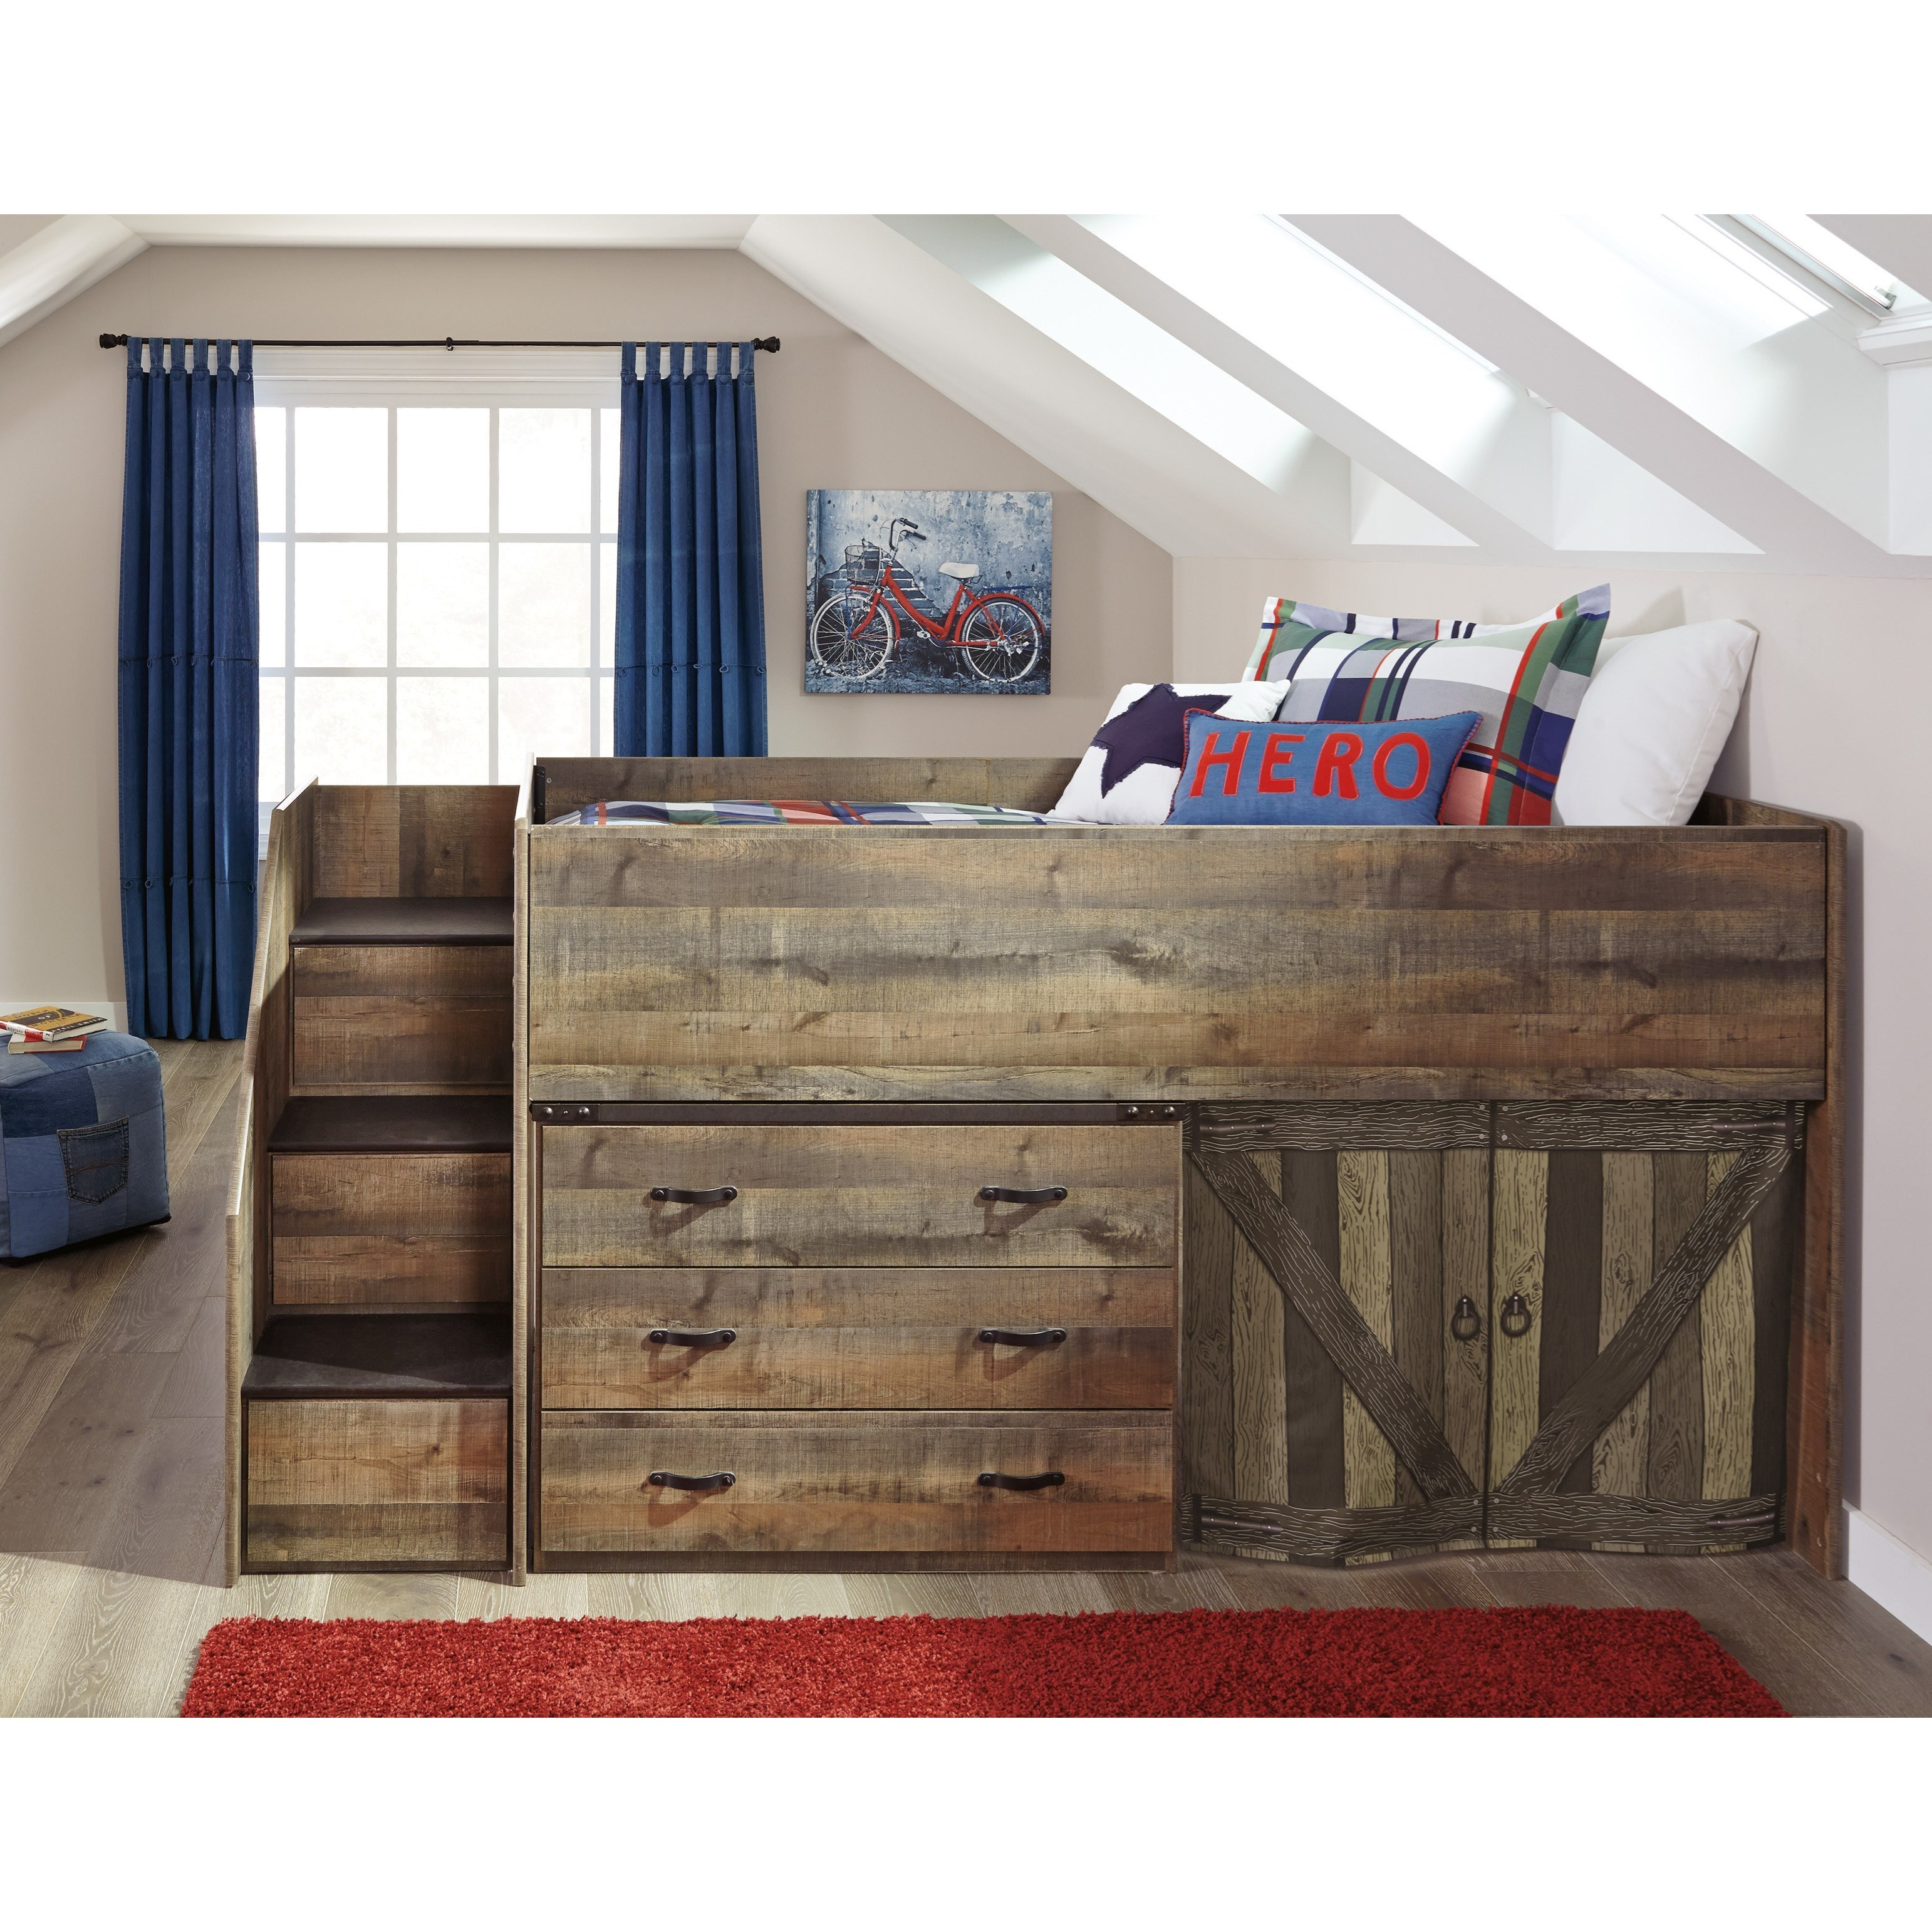 Signature design by ashley trinell loft bed with stairs and drawer storage becker furniture - Loft bed with drawer stairs ...